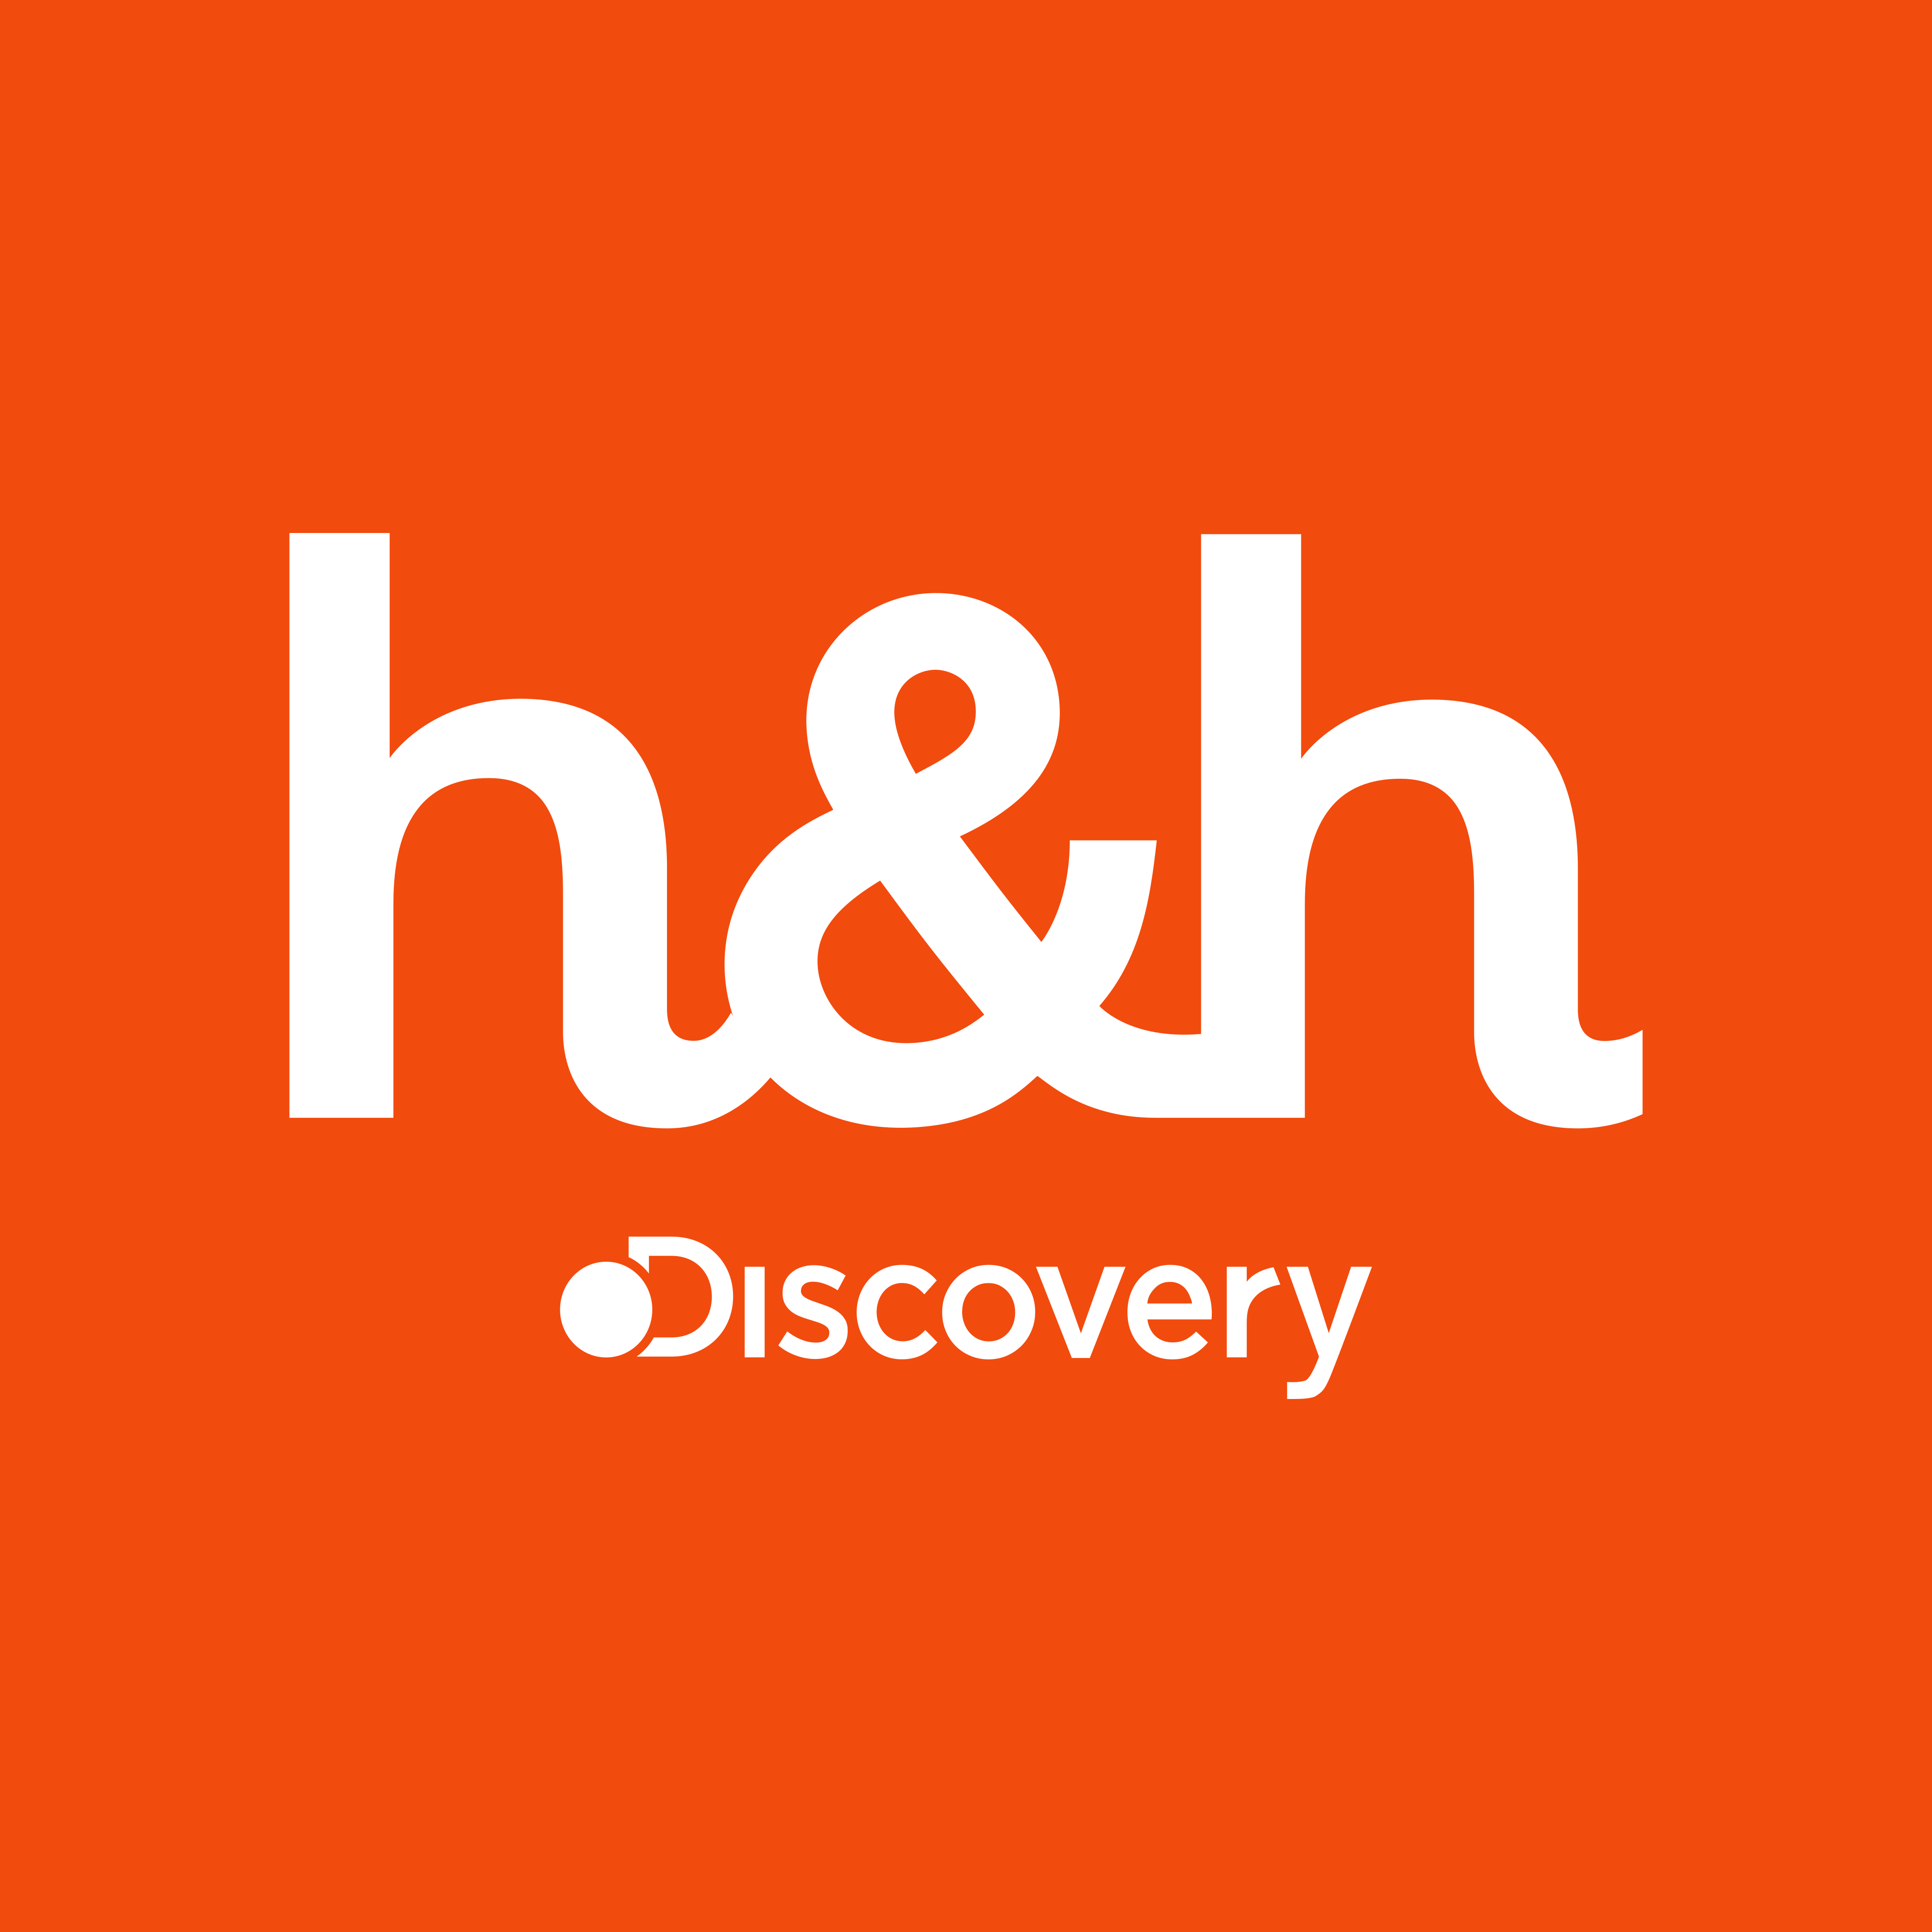 discovery home and health logo 1 - Discovery Home & Health Logo